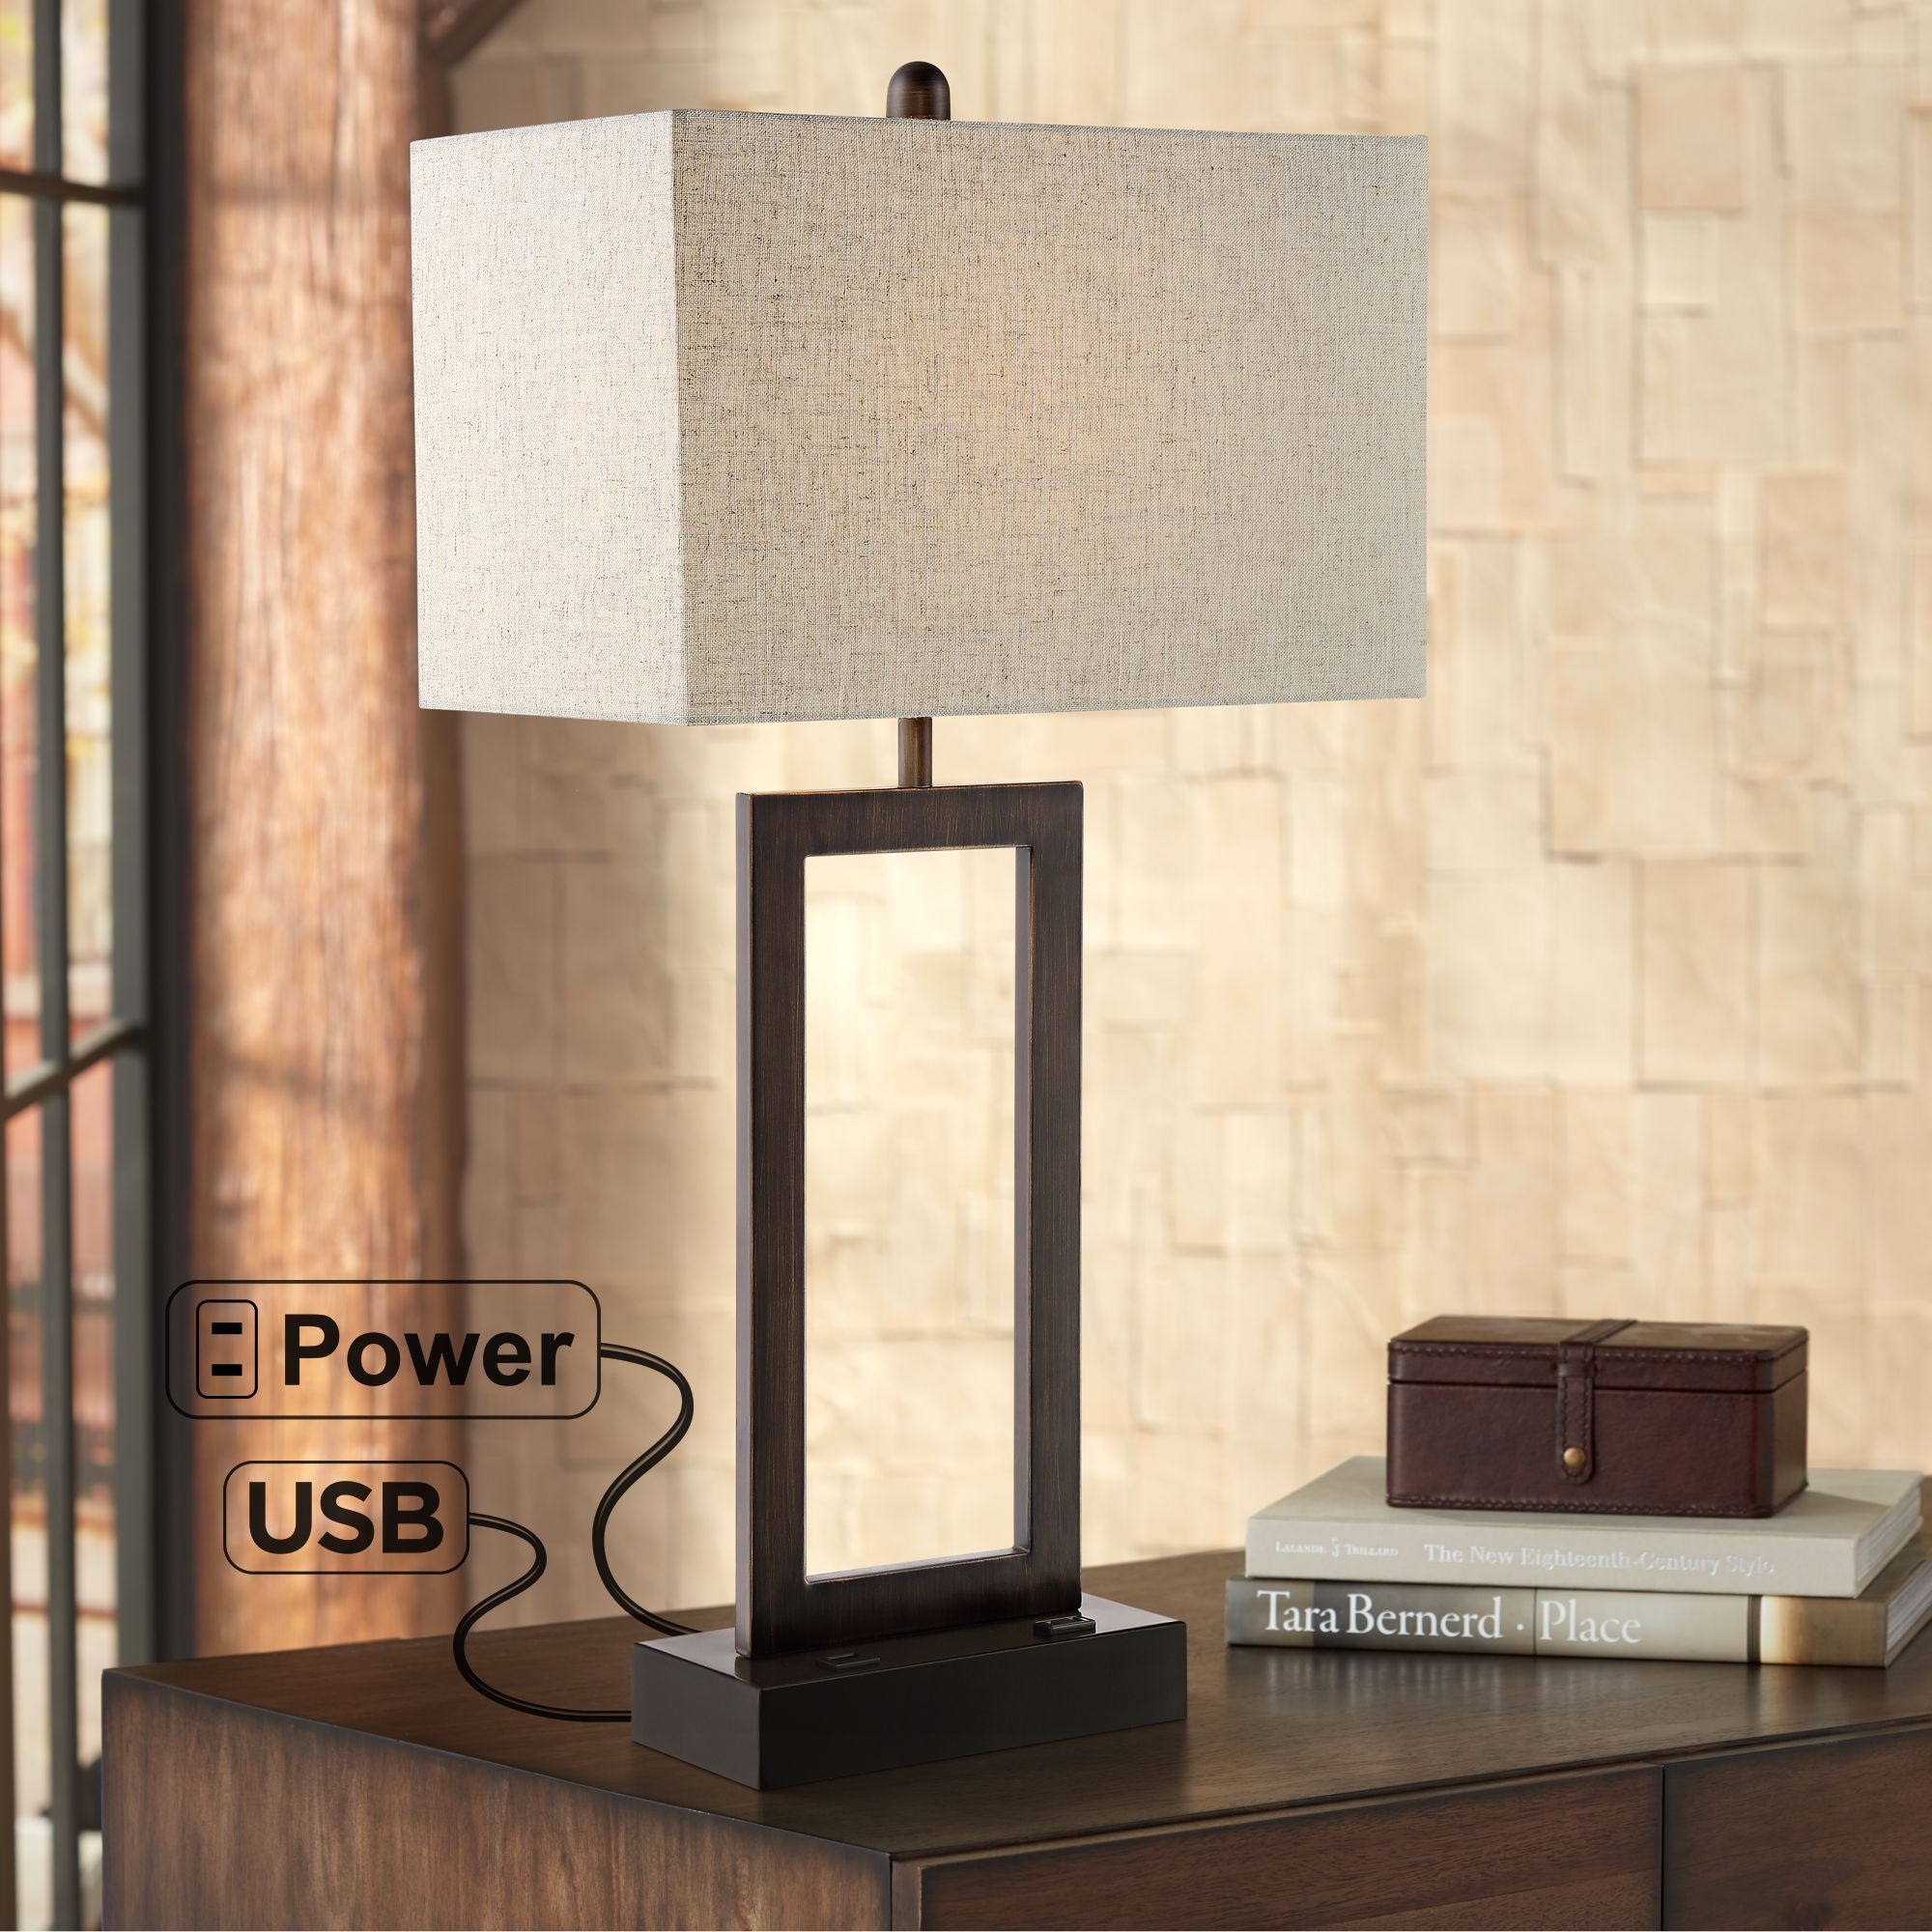 360 Lighting Modern Table Lamp With Usb And Ac Power Outlet In Base Bronze Rectangular Oatmeal Fabric Shade For Living Room Office Walmart Com In 2020 Metal Table Lamps Modern Table